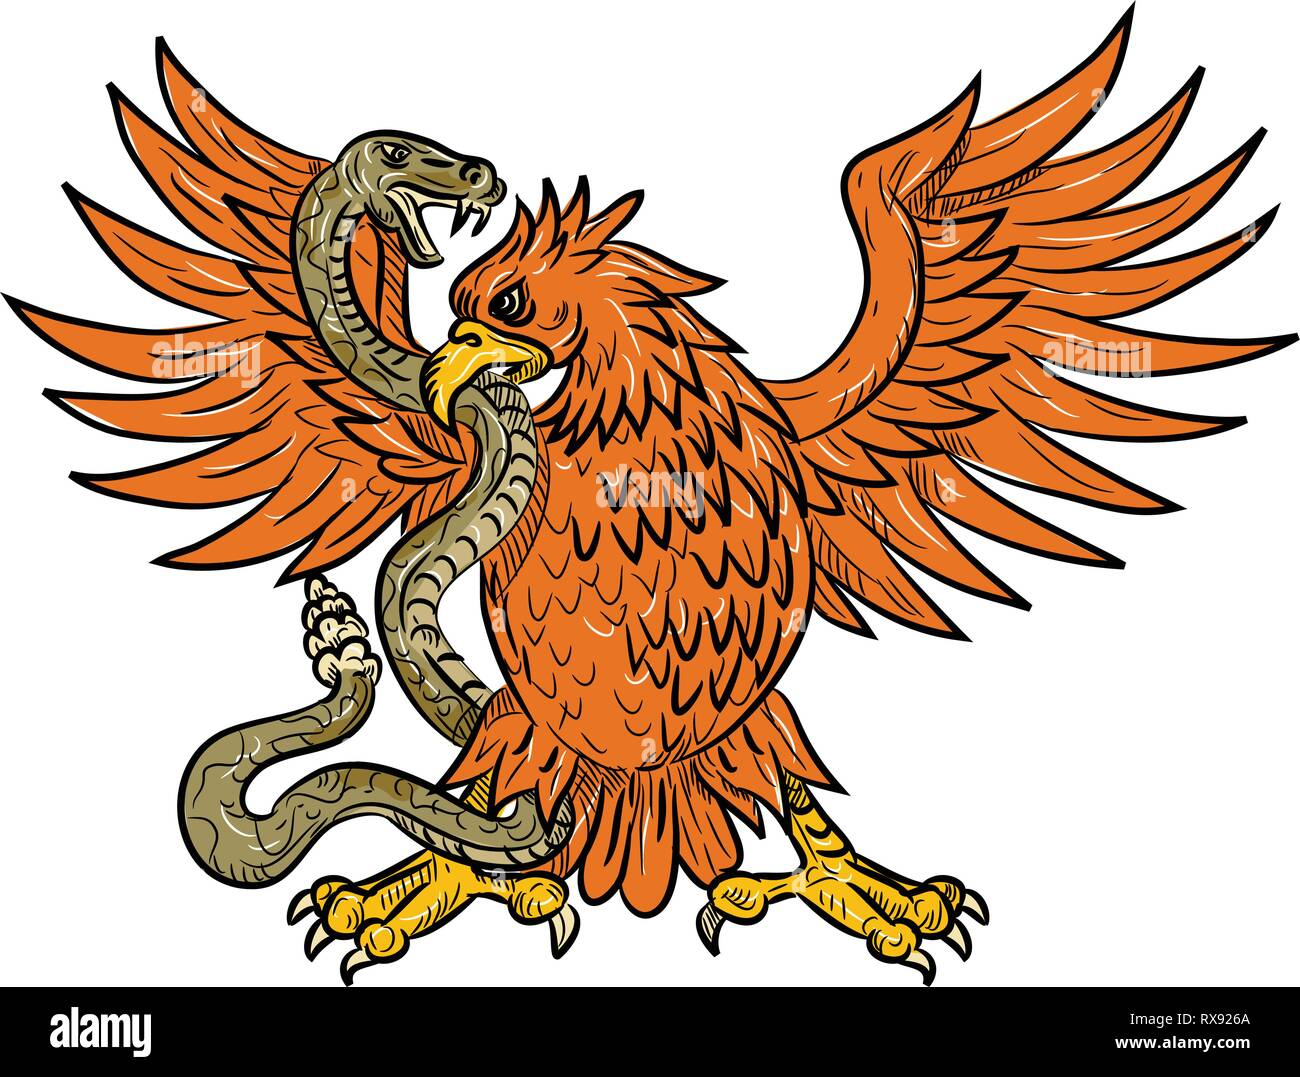 Drawing sketch style illustration of an American golden eagle, Mexican eagle or northern crested caracara grappling a rattlesnake, viper, snake or ser Stock Vector